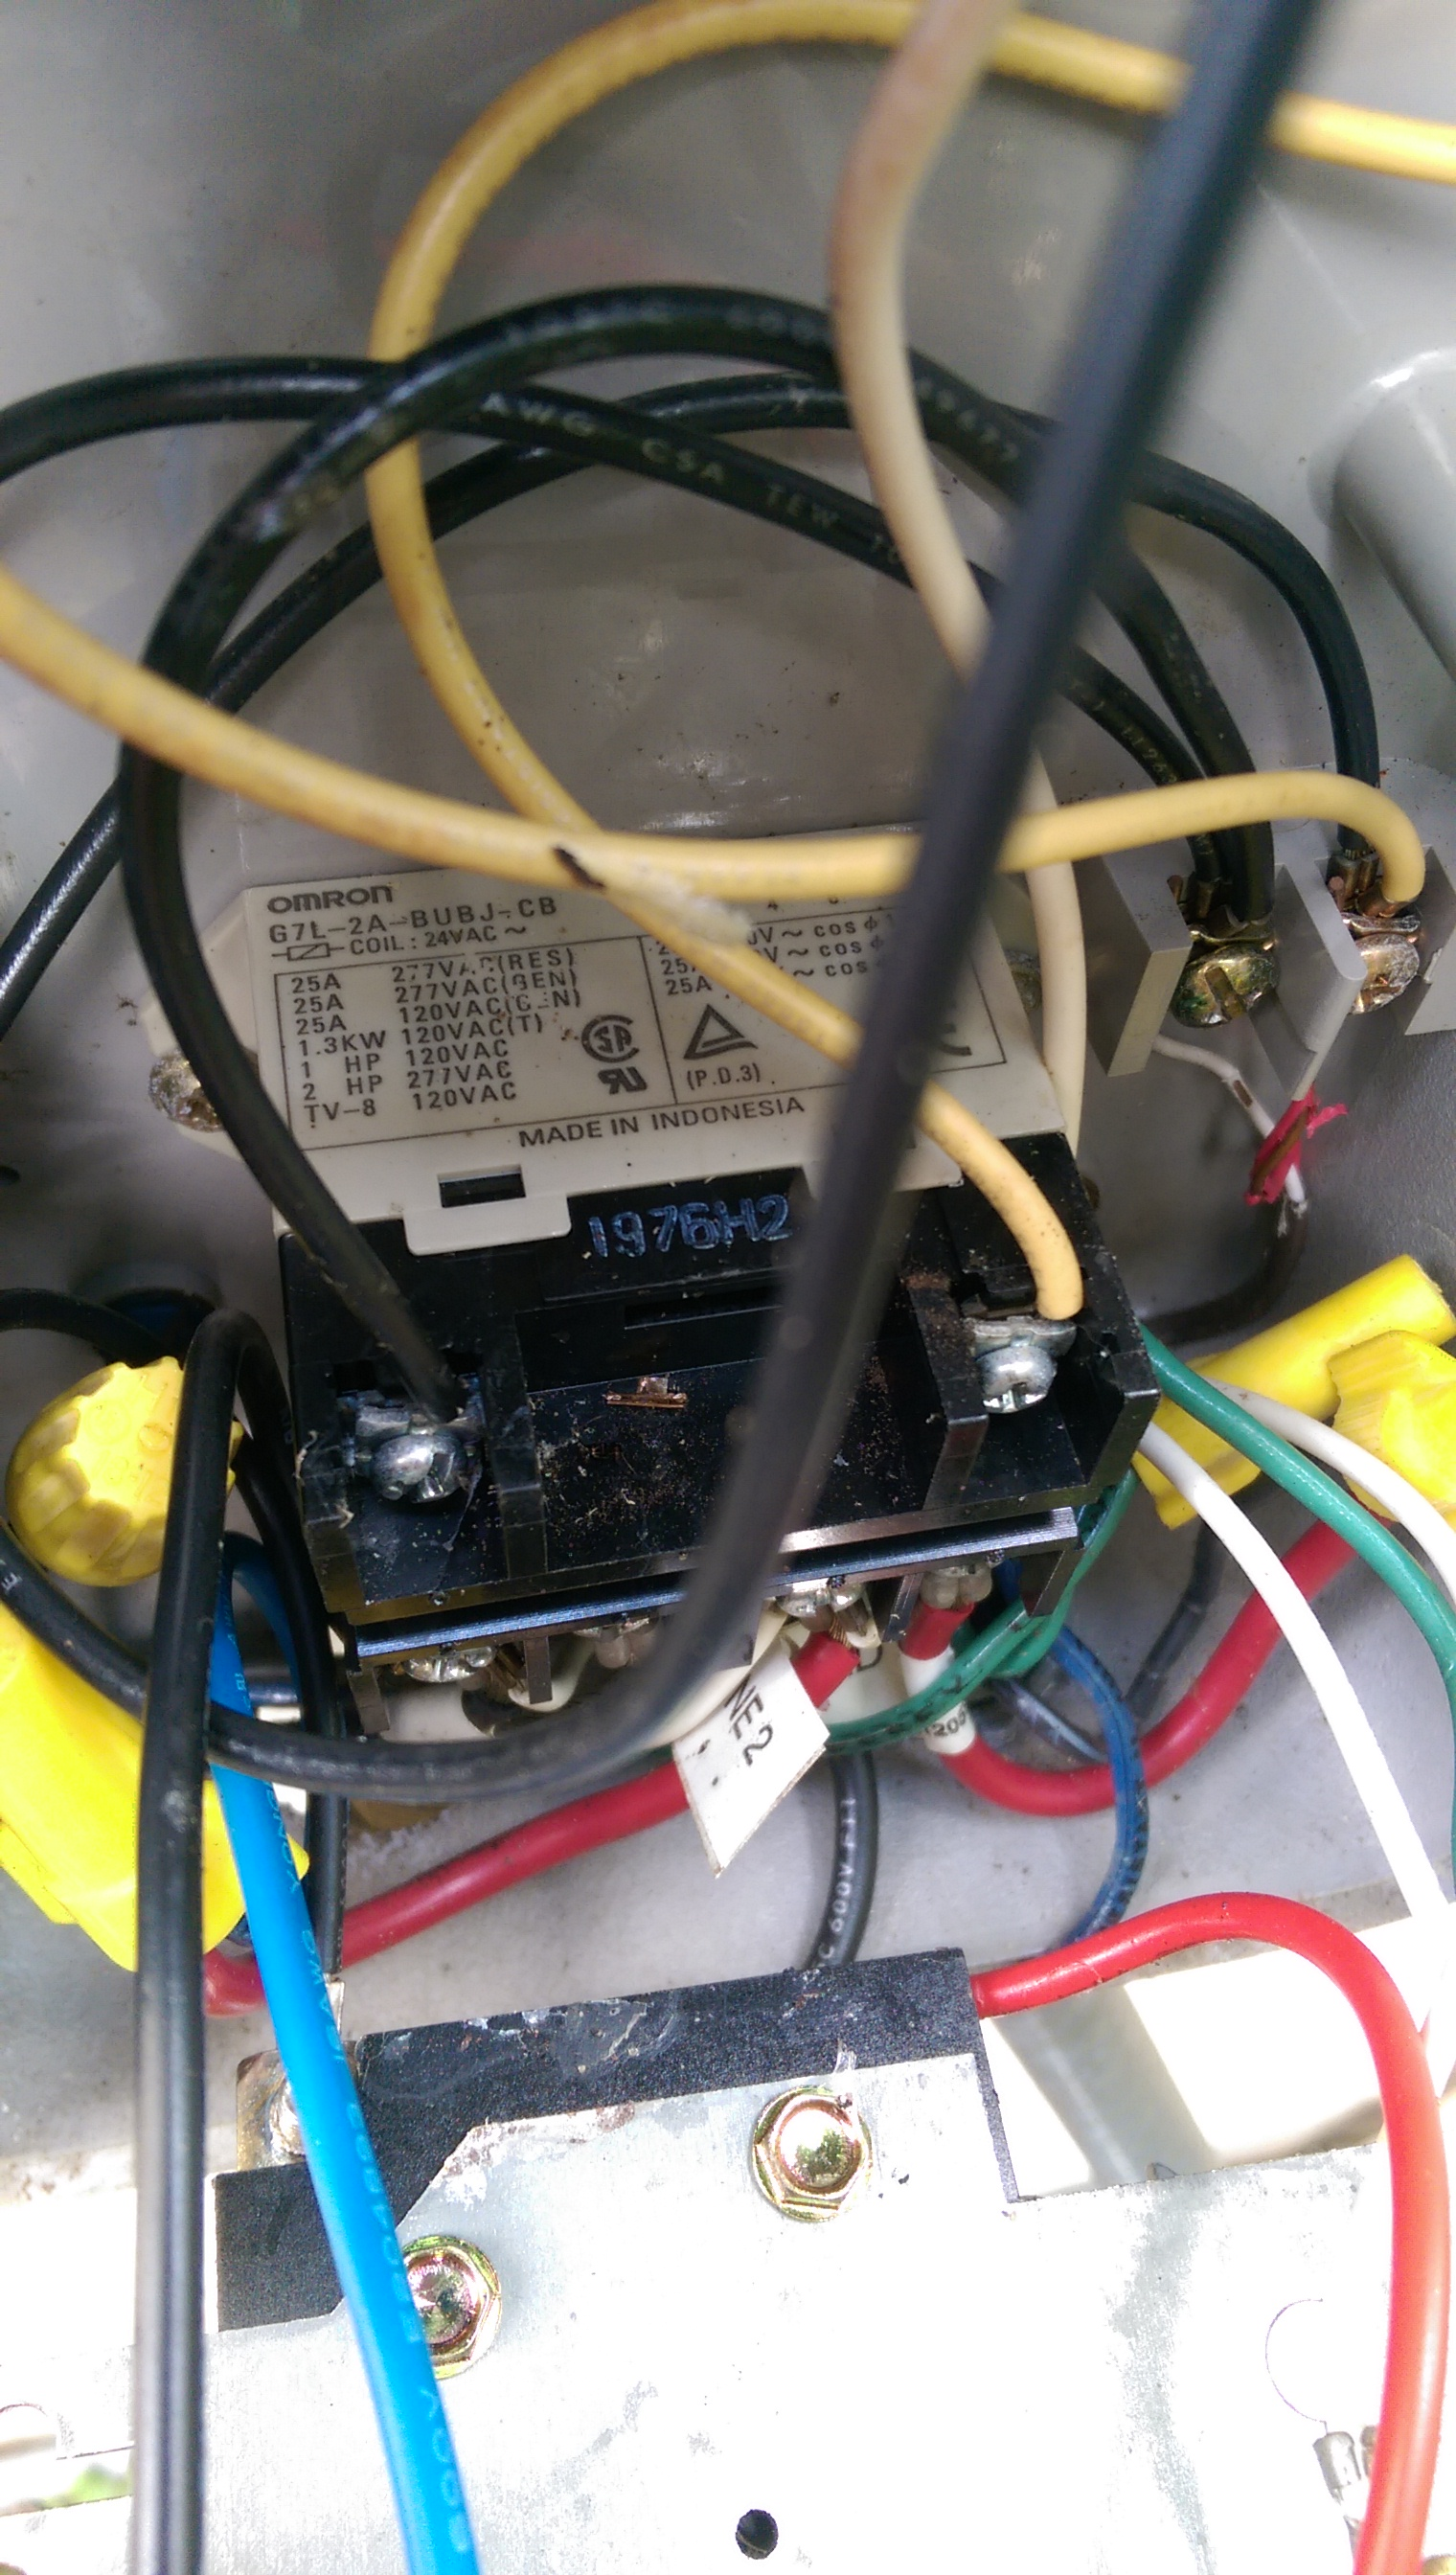 intermatic_behind_dial?resize\=665%2C1176\&ssl\=1 intermatic sprinkler timer wiring diagram tamahuproject org sprinkler timer wiring diagram at soozxer.org